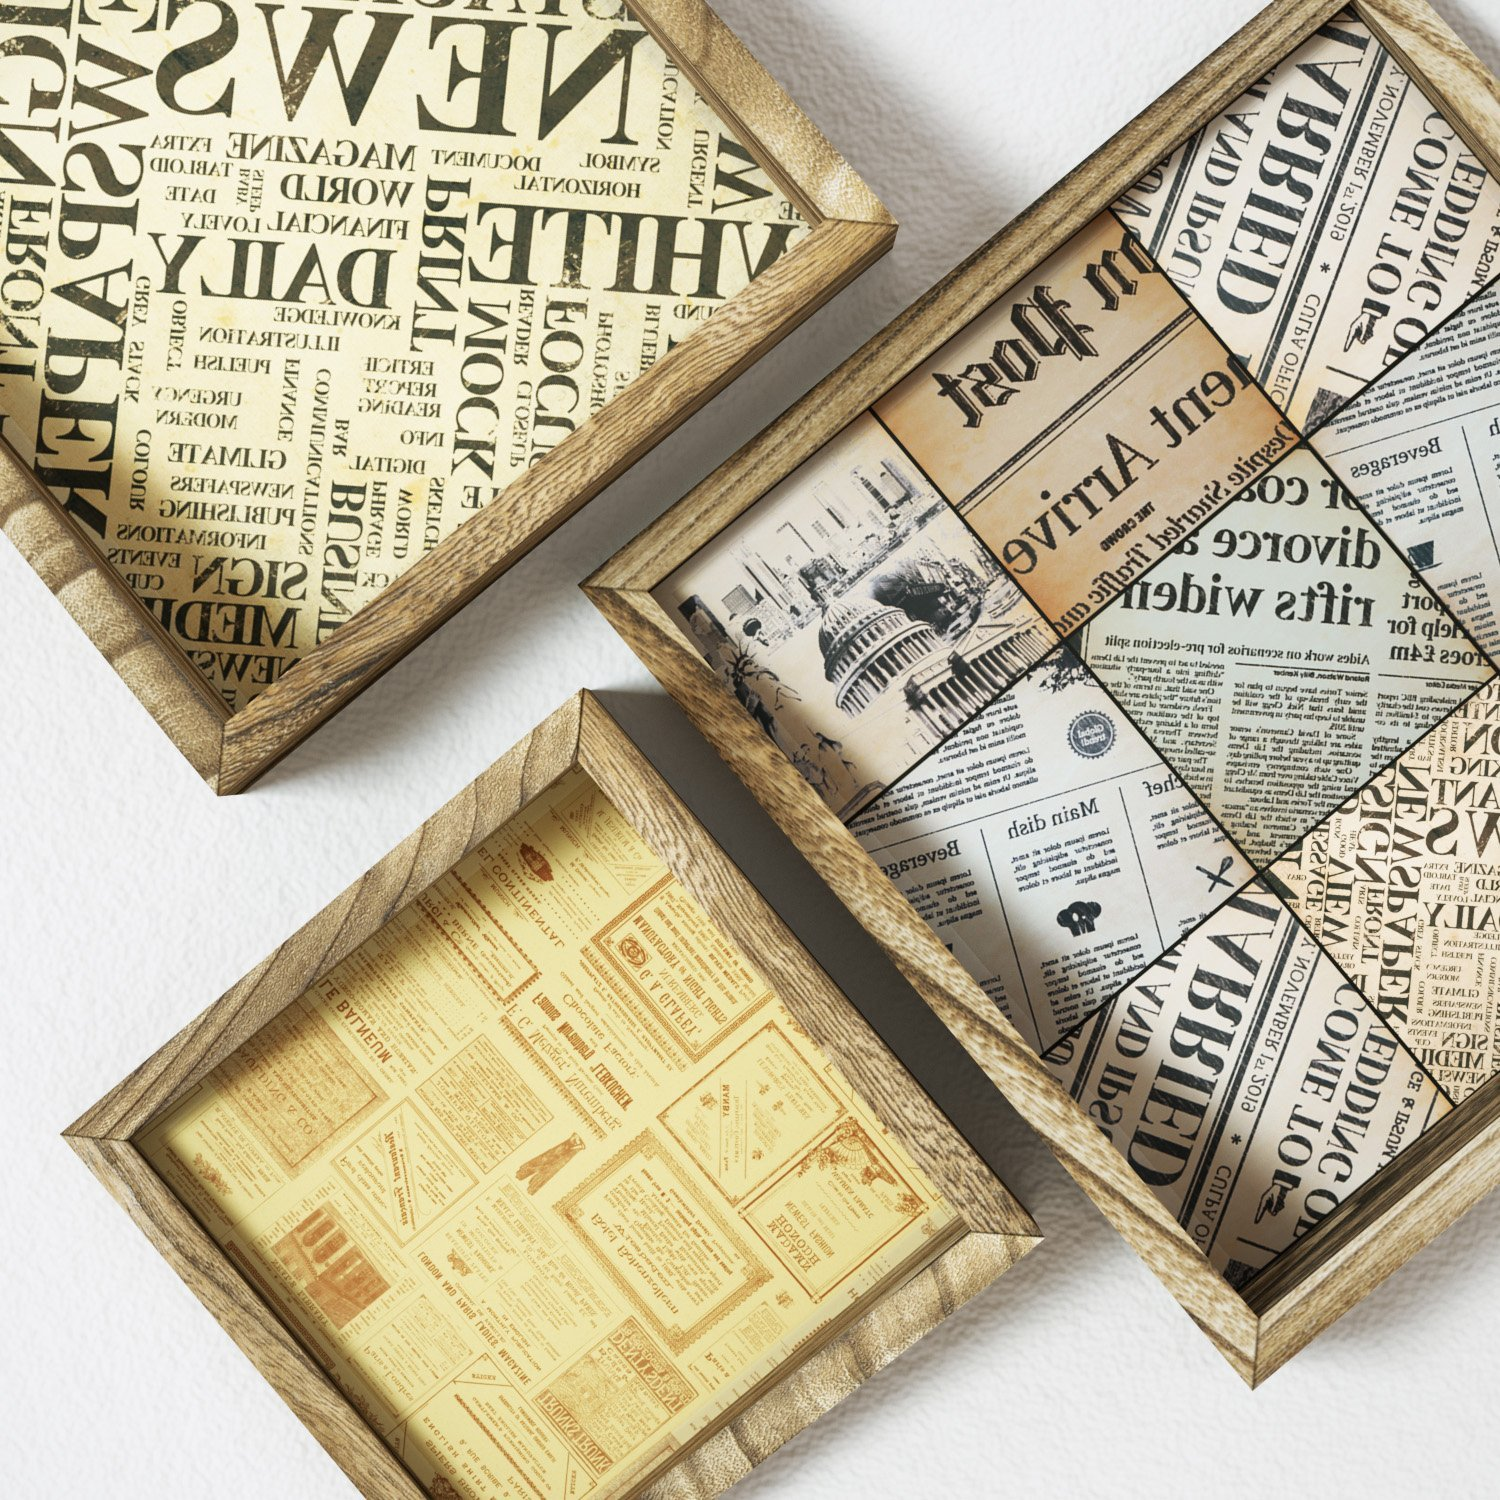 Love-KANKEI Floating Shelves Wall Mount - Rustic Wood Wall Shelf with Old Newspaper Style Paper Board Set of 3 by Love-KANKEI (Image #2)